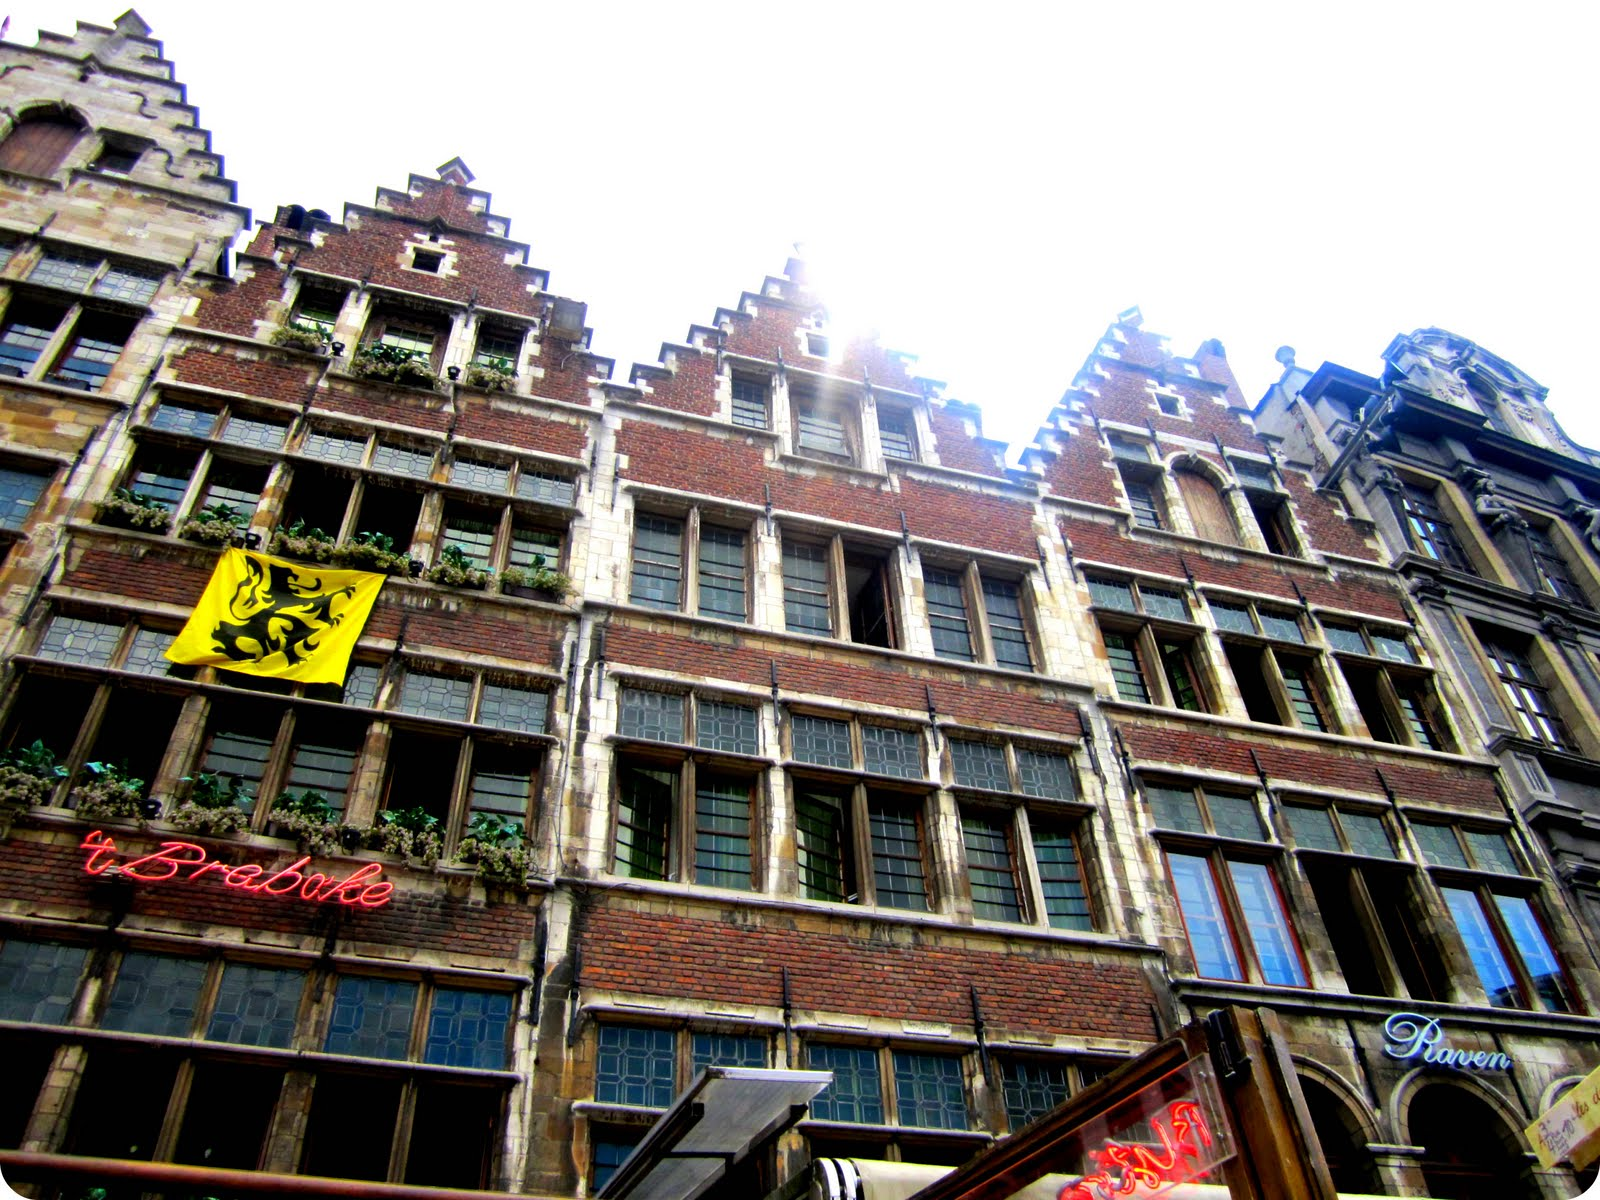 Antwerp, Belgium – Diamonds are just a part of its charm